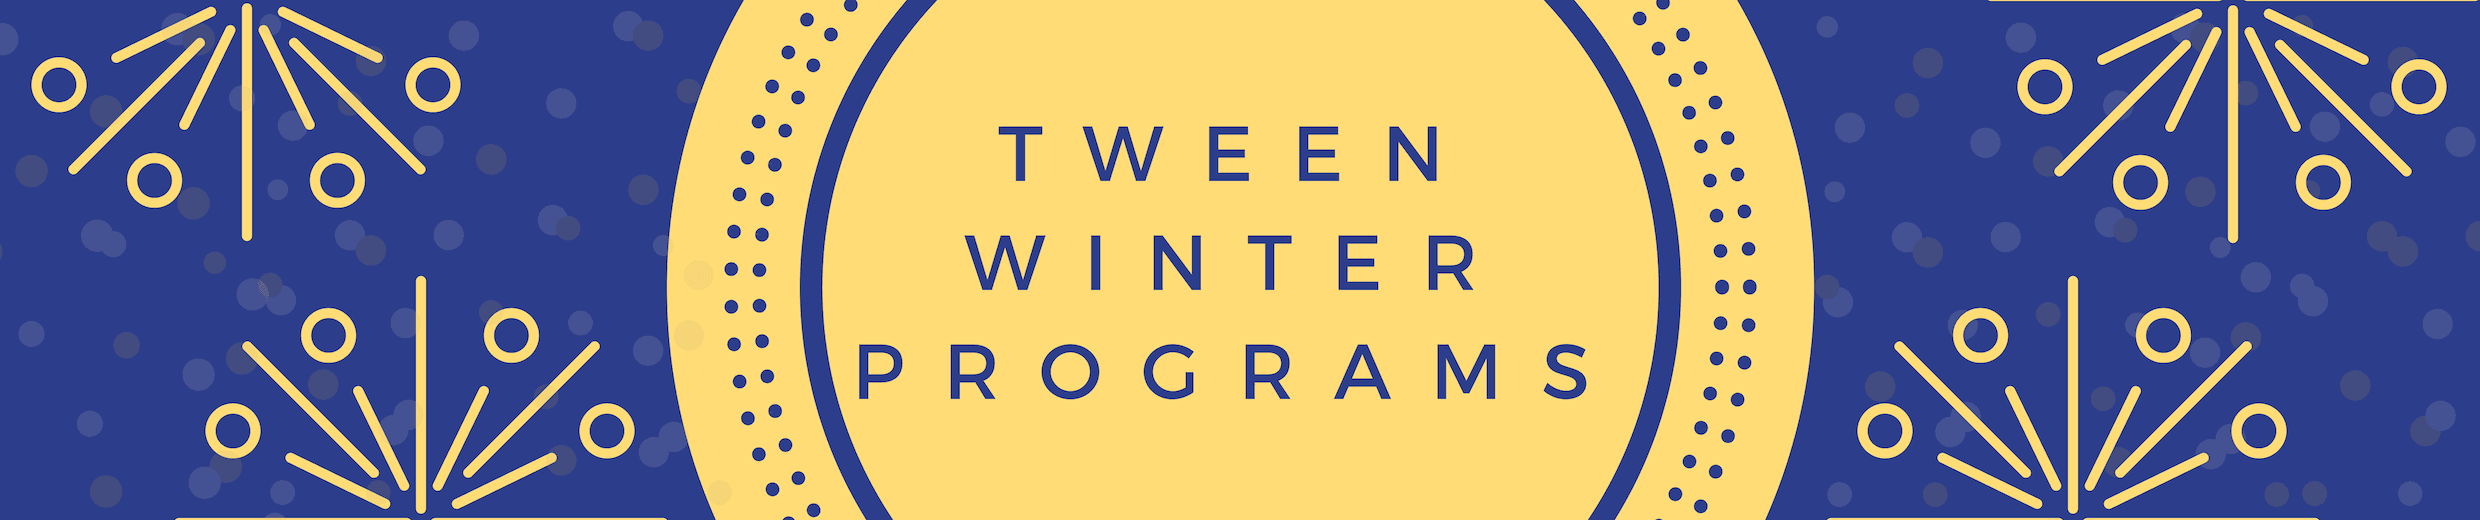 Tween Winter Programs Header Image